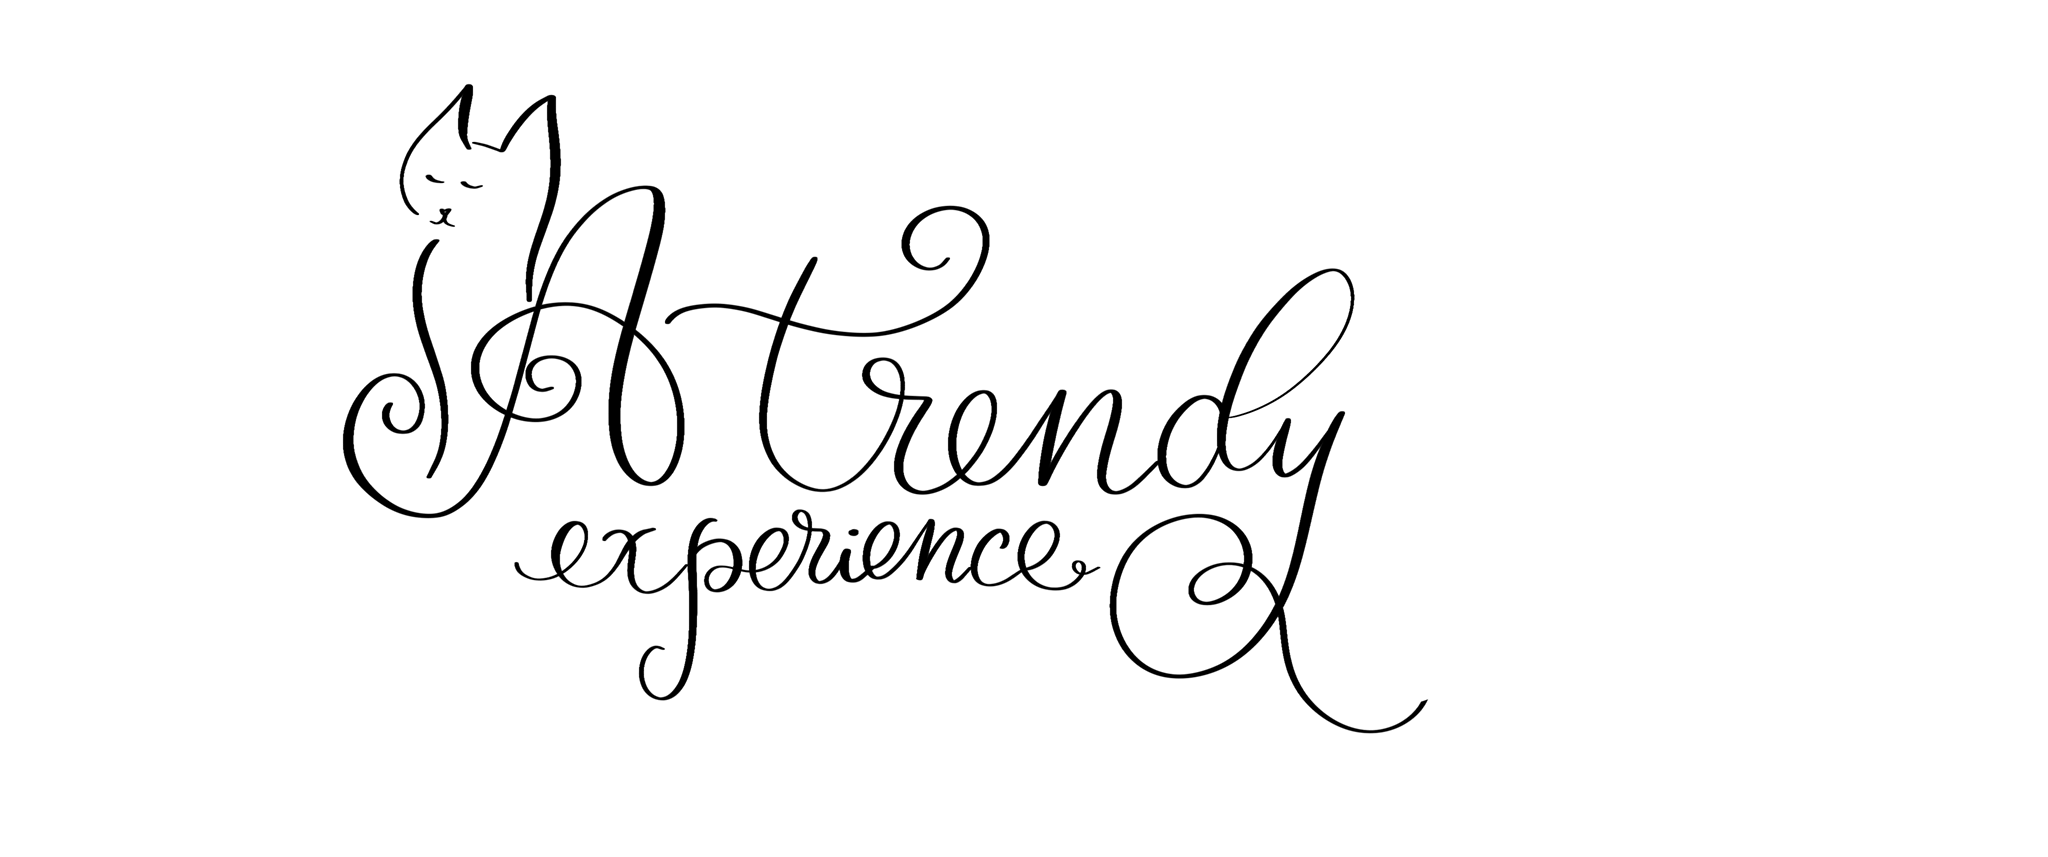 A Trendy Experience